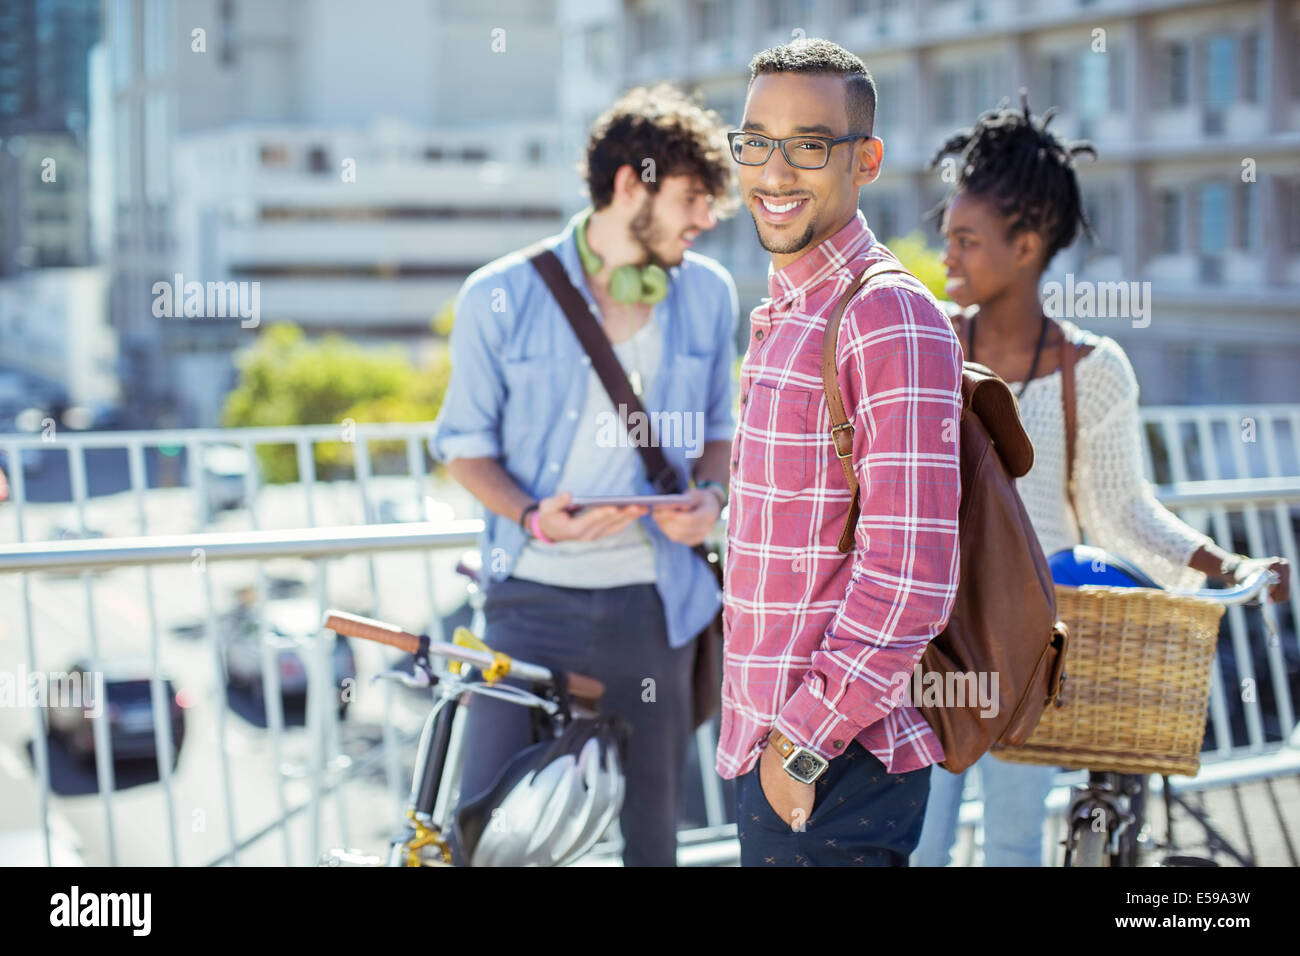 Man smiling on city street - Stock Image